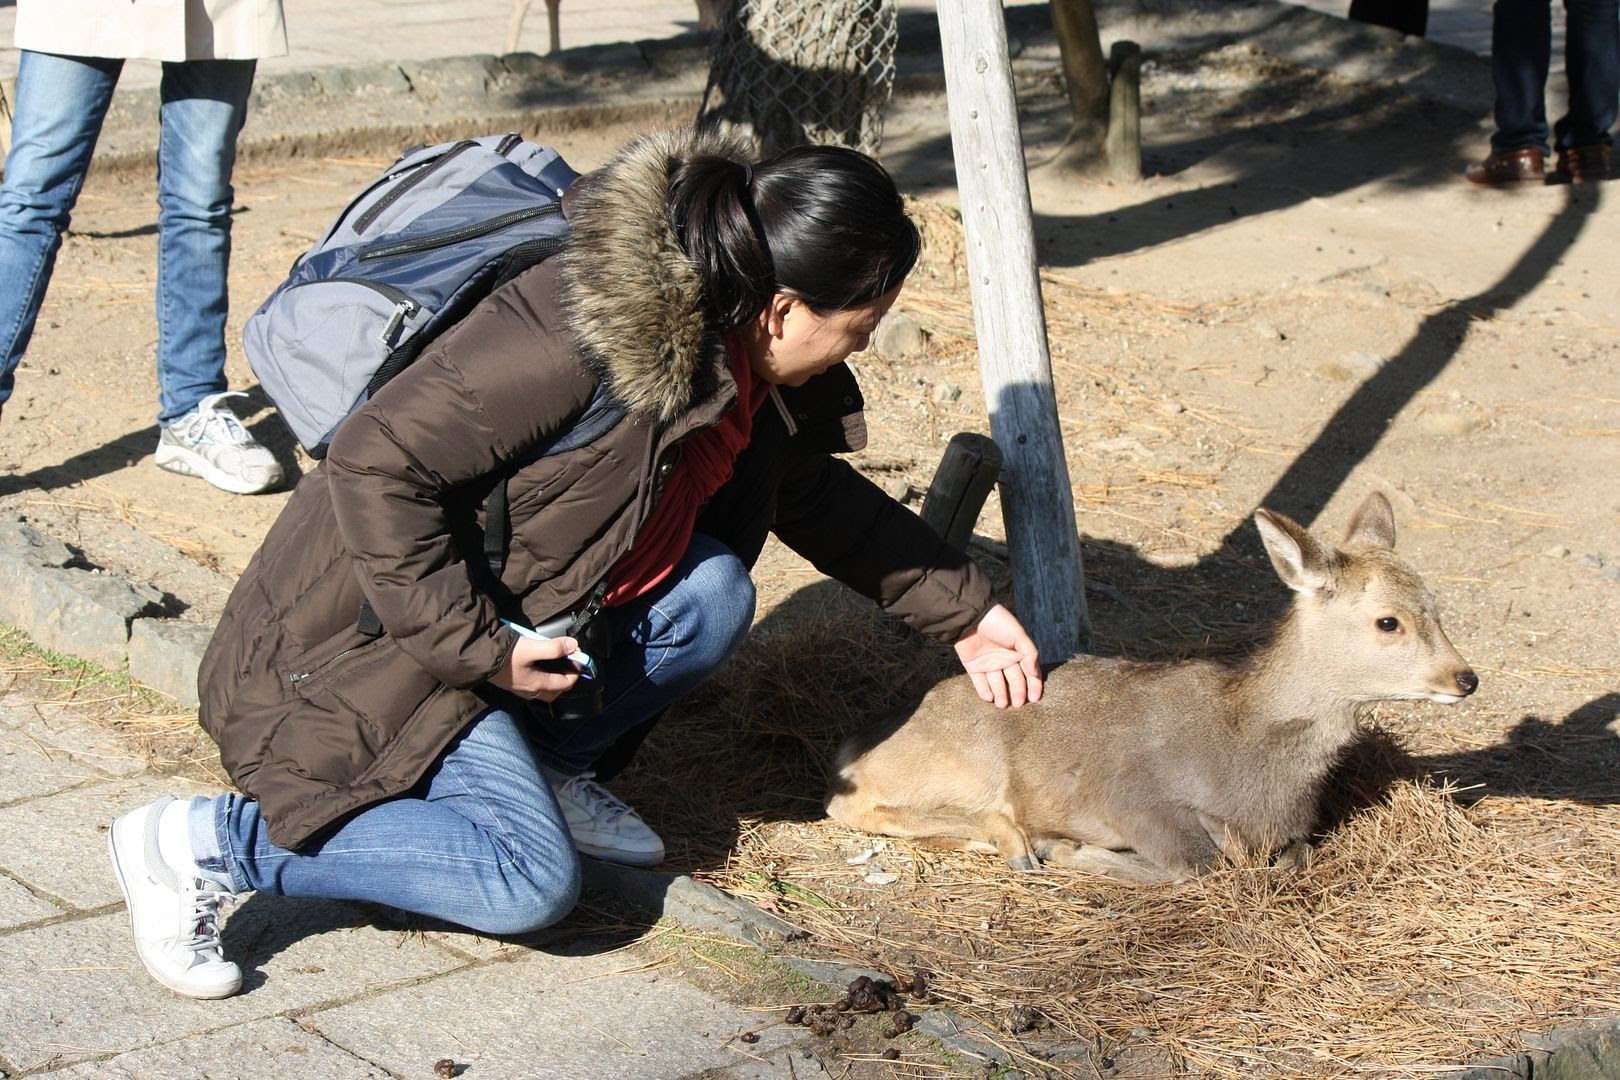 Claire saying hi to the deer in Nara, Japan photo 2013-12-22183111_zps49a537c1.jpg